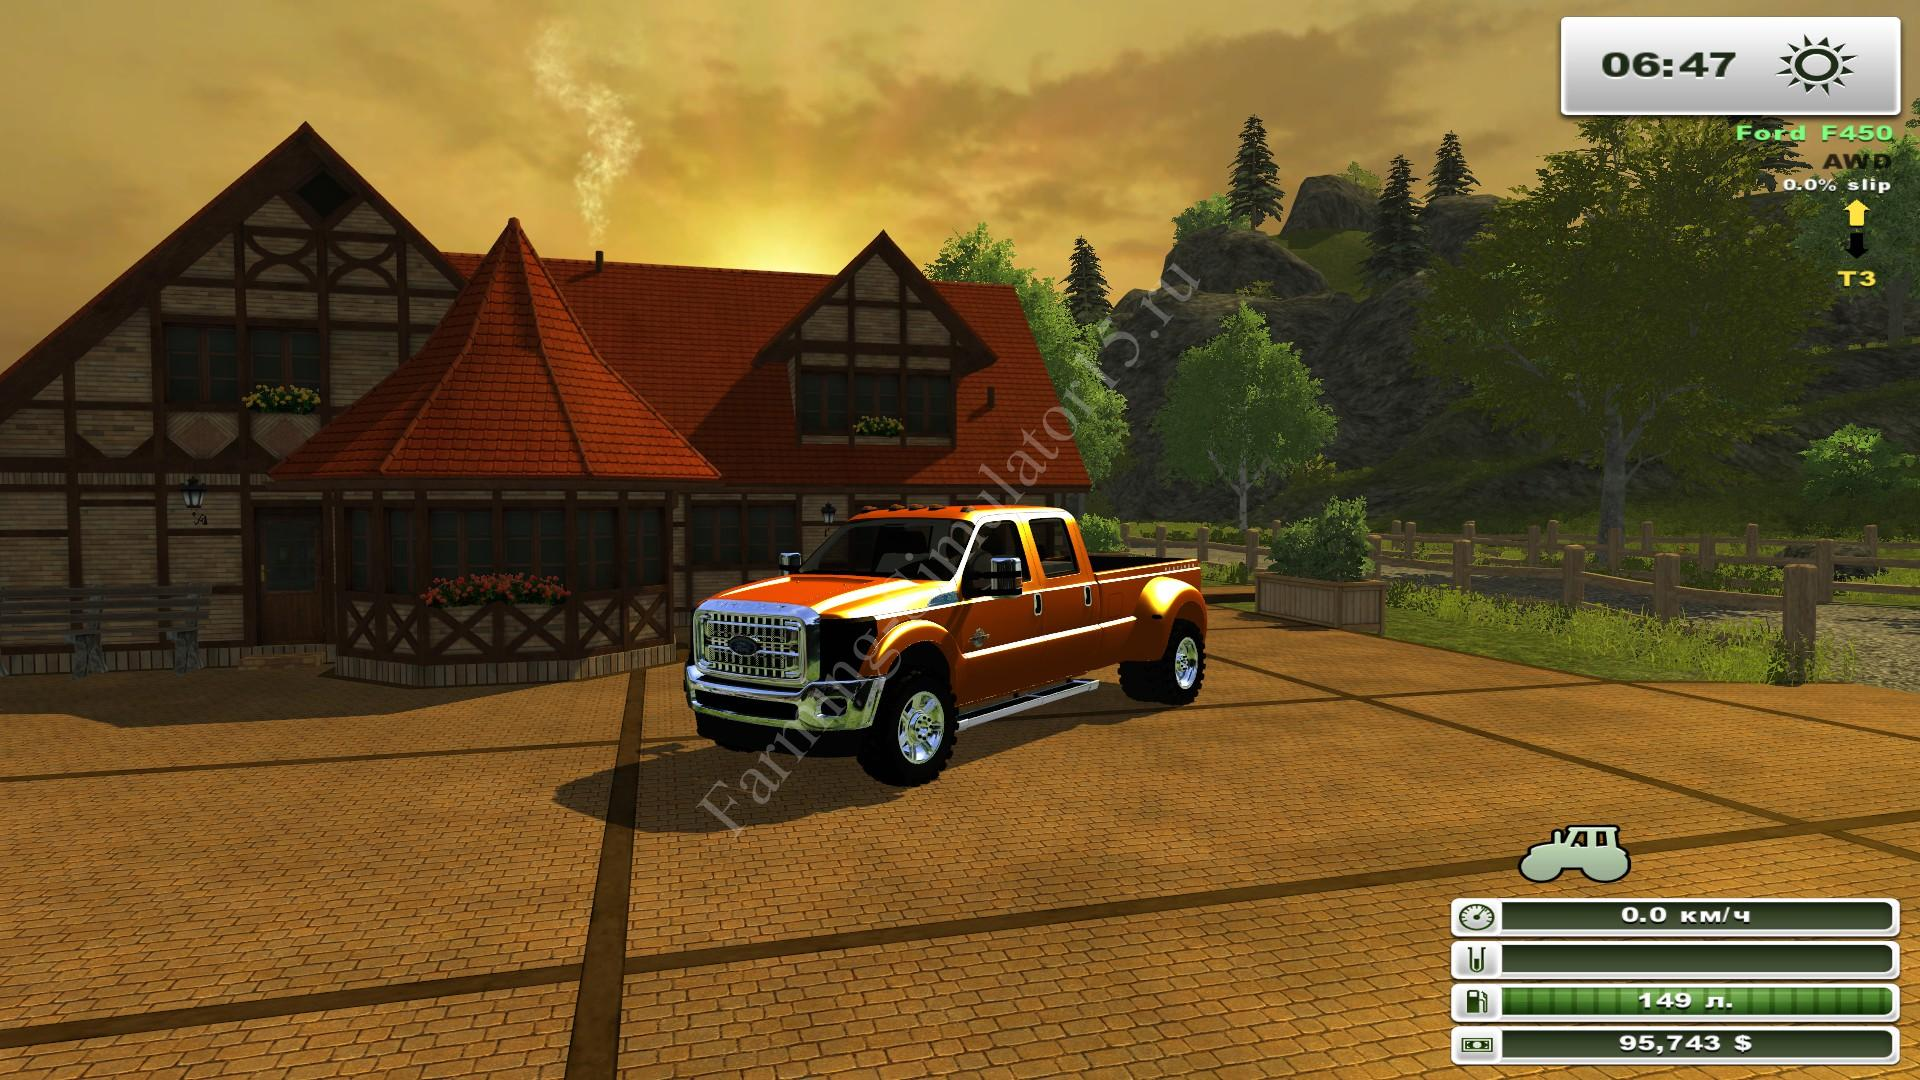 Мод легкового авто Ford F450 v 1.0 More Realistic, Farming Simulator 2013, Farming Simulator 13